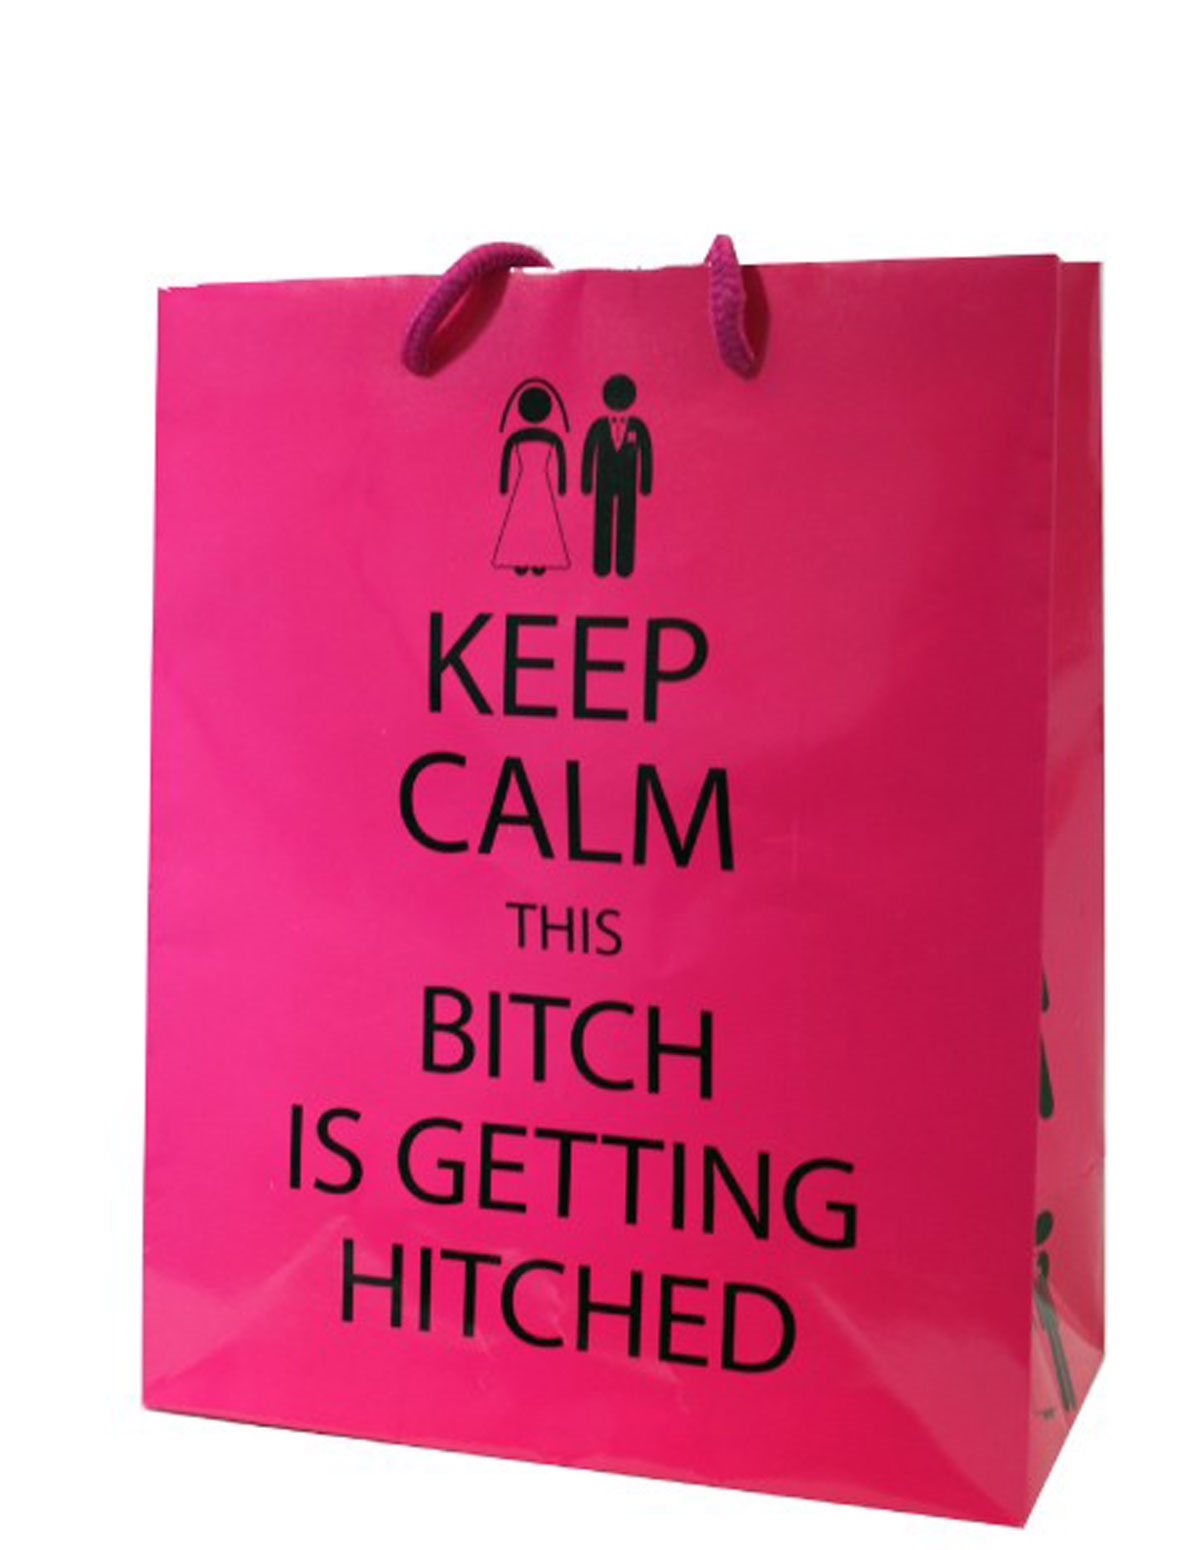 The Bitch Is Getting Hitched Gift Bag